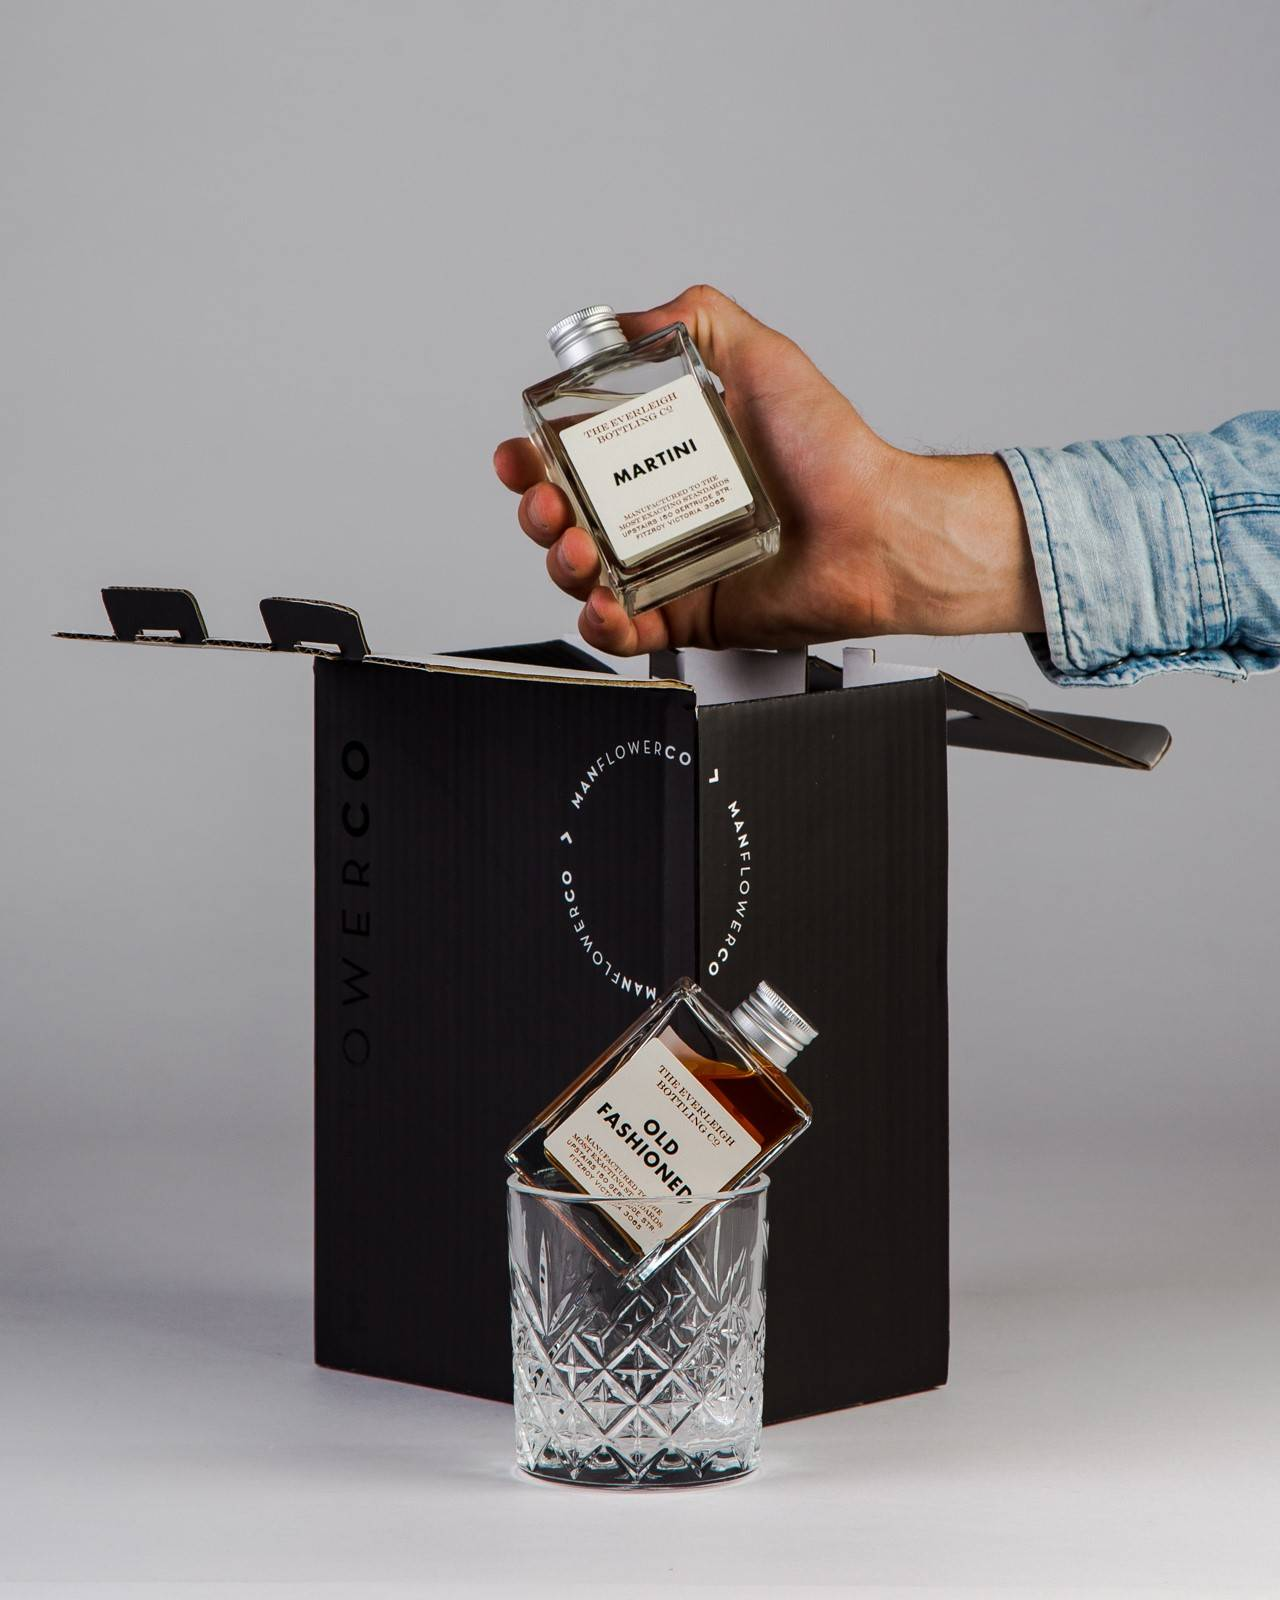 Toast to everyday occasions with the Cocktail Gift Pack, one of the beer gifts in Manflower Co's drinkable range.